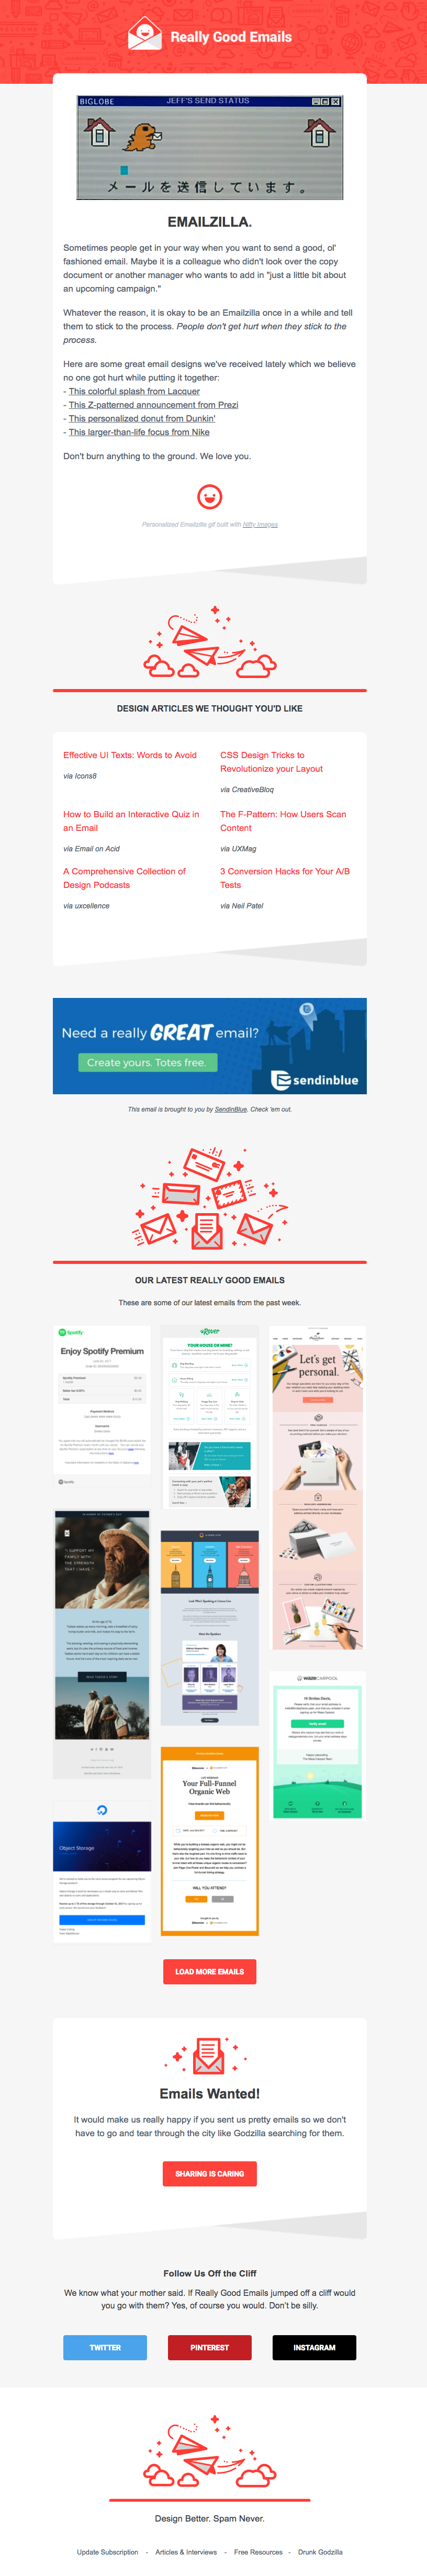 9 Of The Best Newsletter Examples To Inspire You Sendinblue